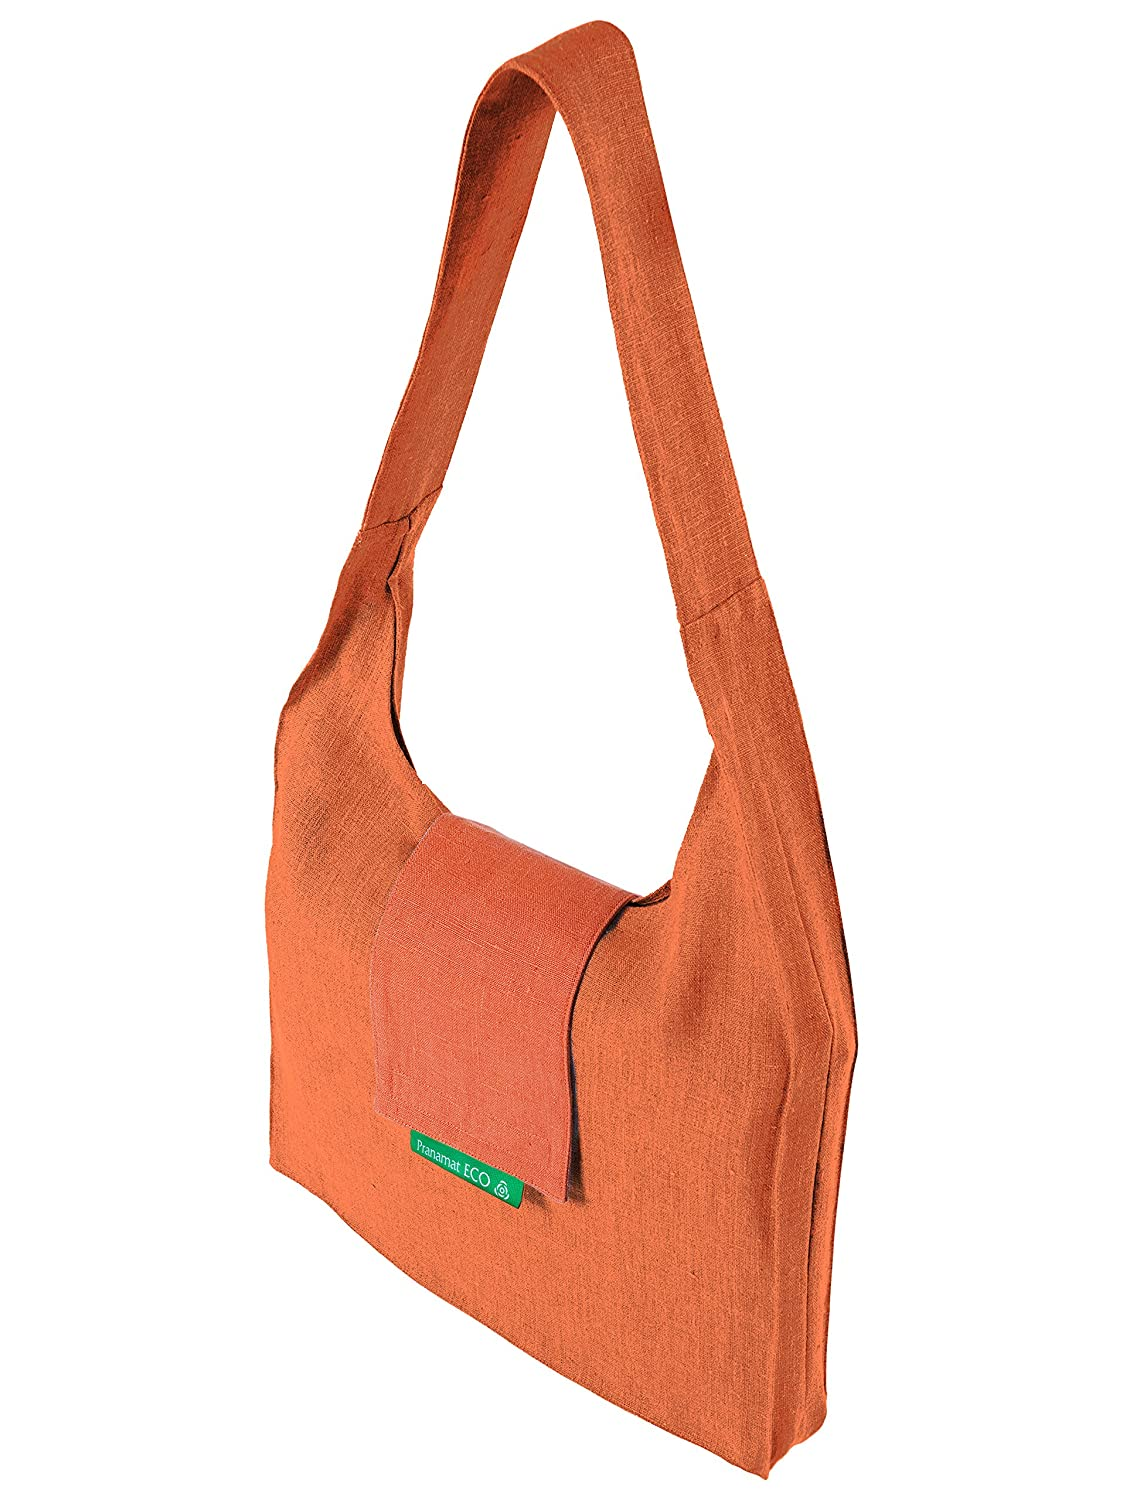 Pranamat ECO Bag Pranamat Fabrika Ltd 676